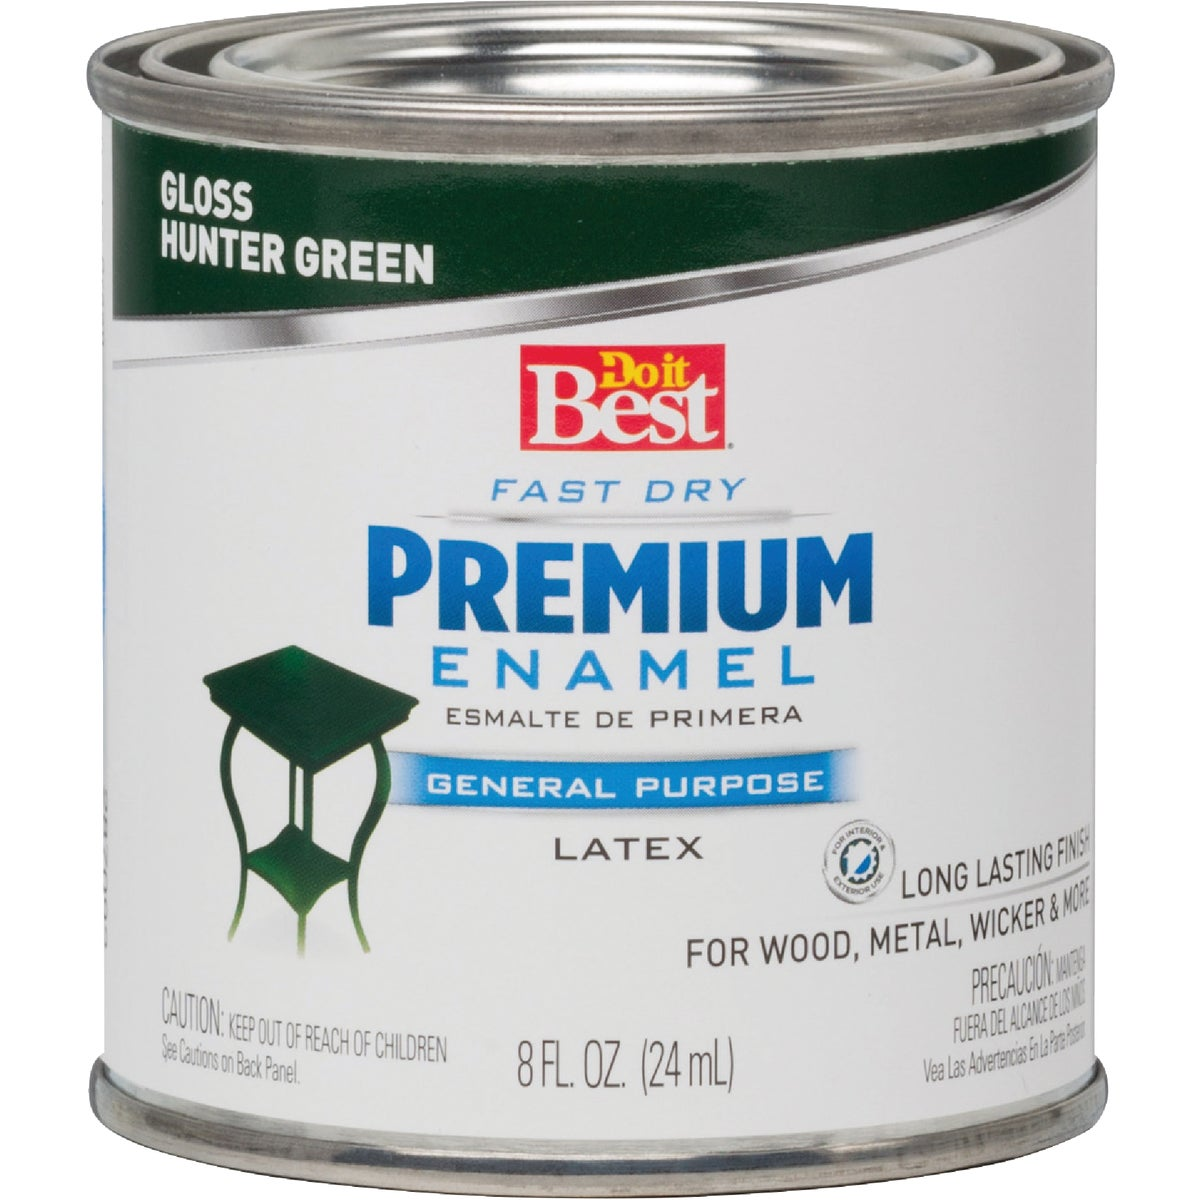 HUNTR GREEN LATEX ENAMEL - 2110 by Rustoleum